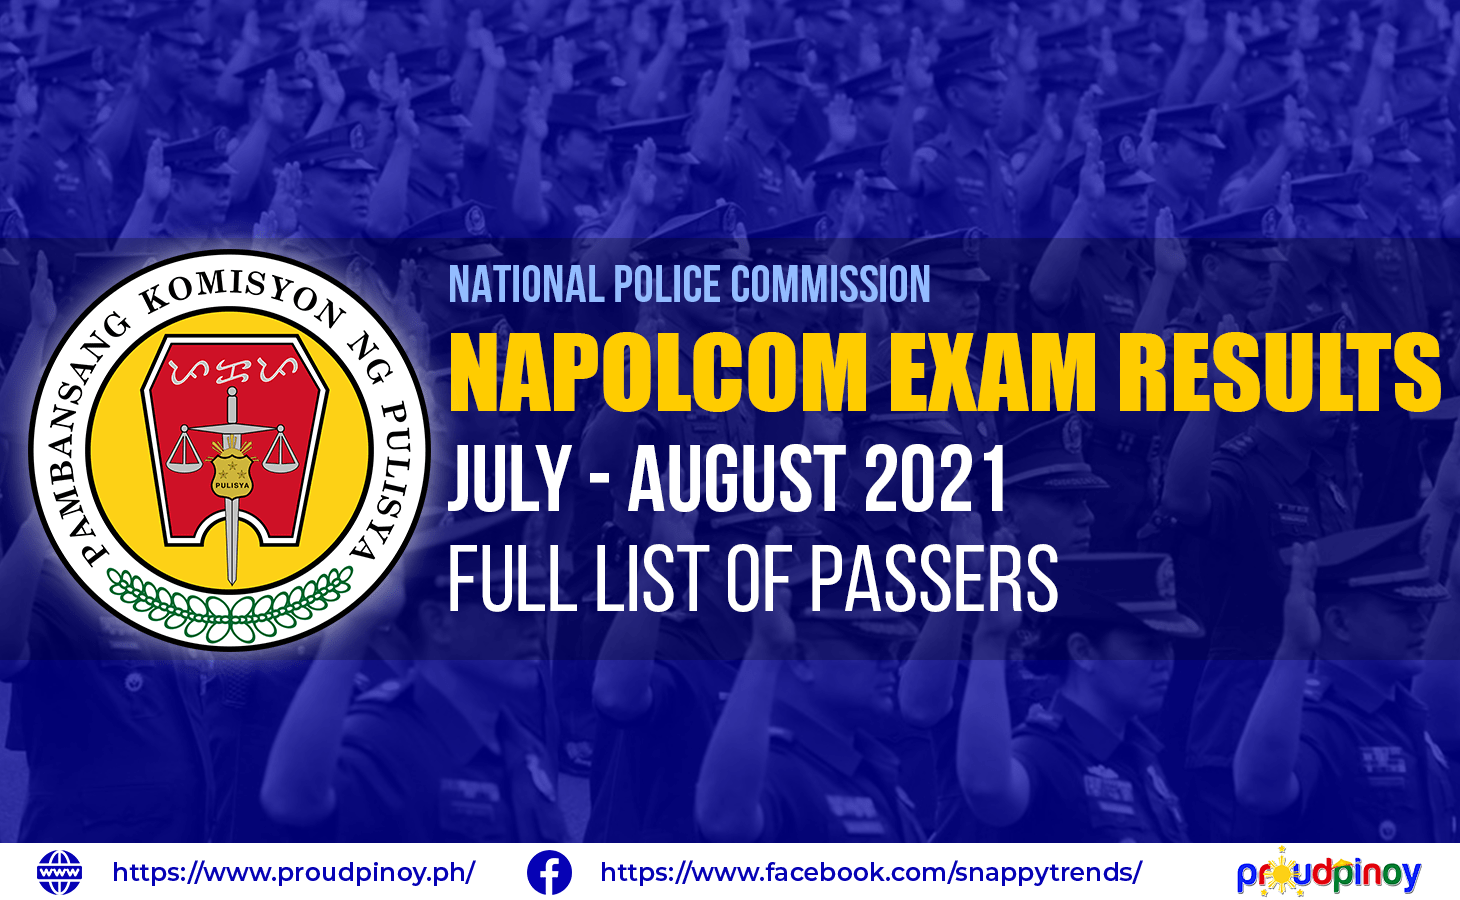 NAPOLCOM exam results july-august 2021 - full list of passers